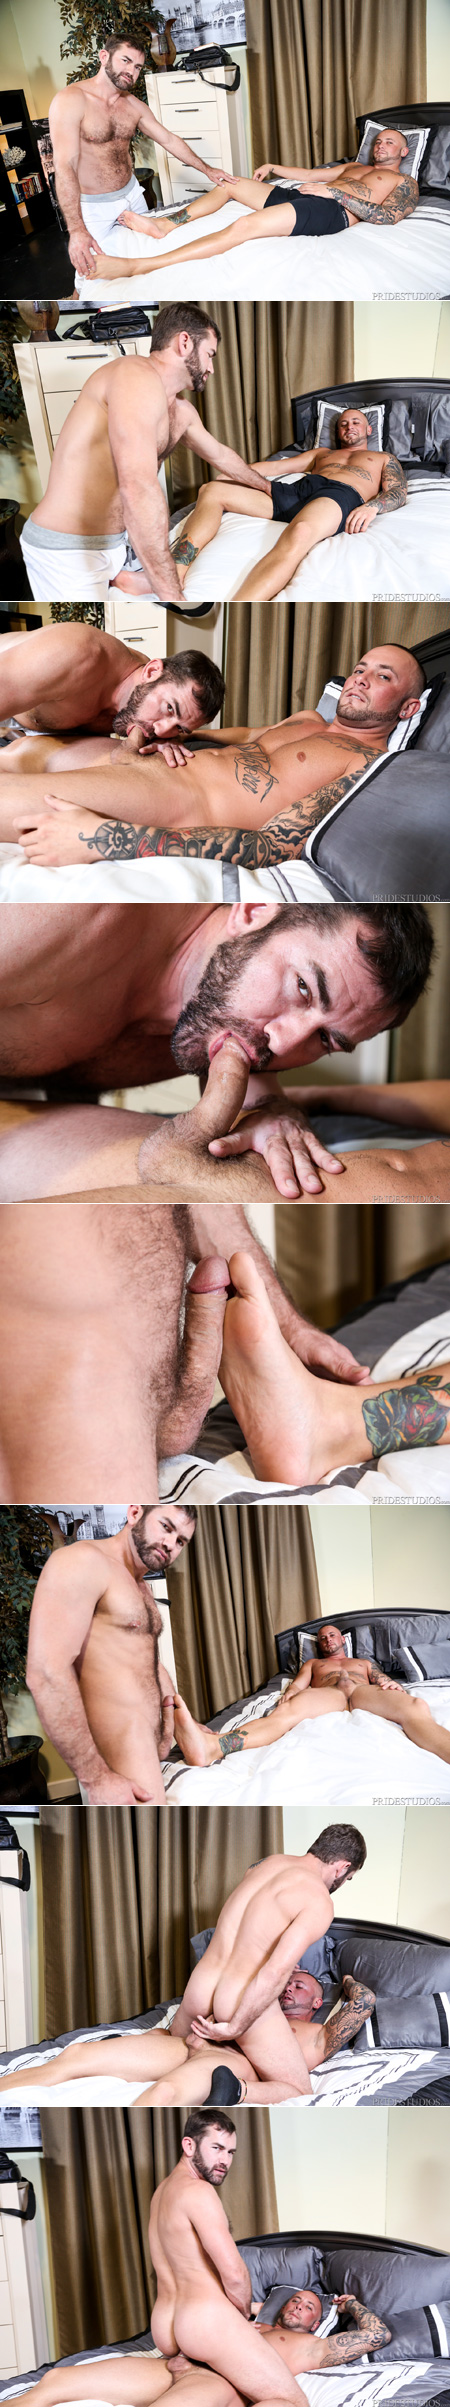 Bear cub gives another man an erection by rubbing his feet, then mounts him for gay anal sex.